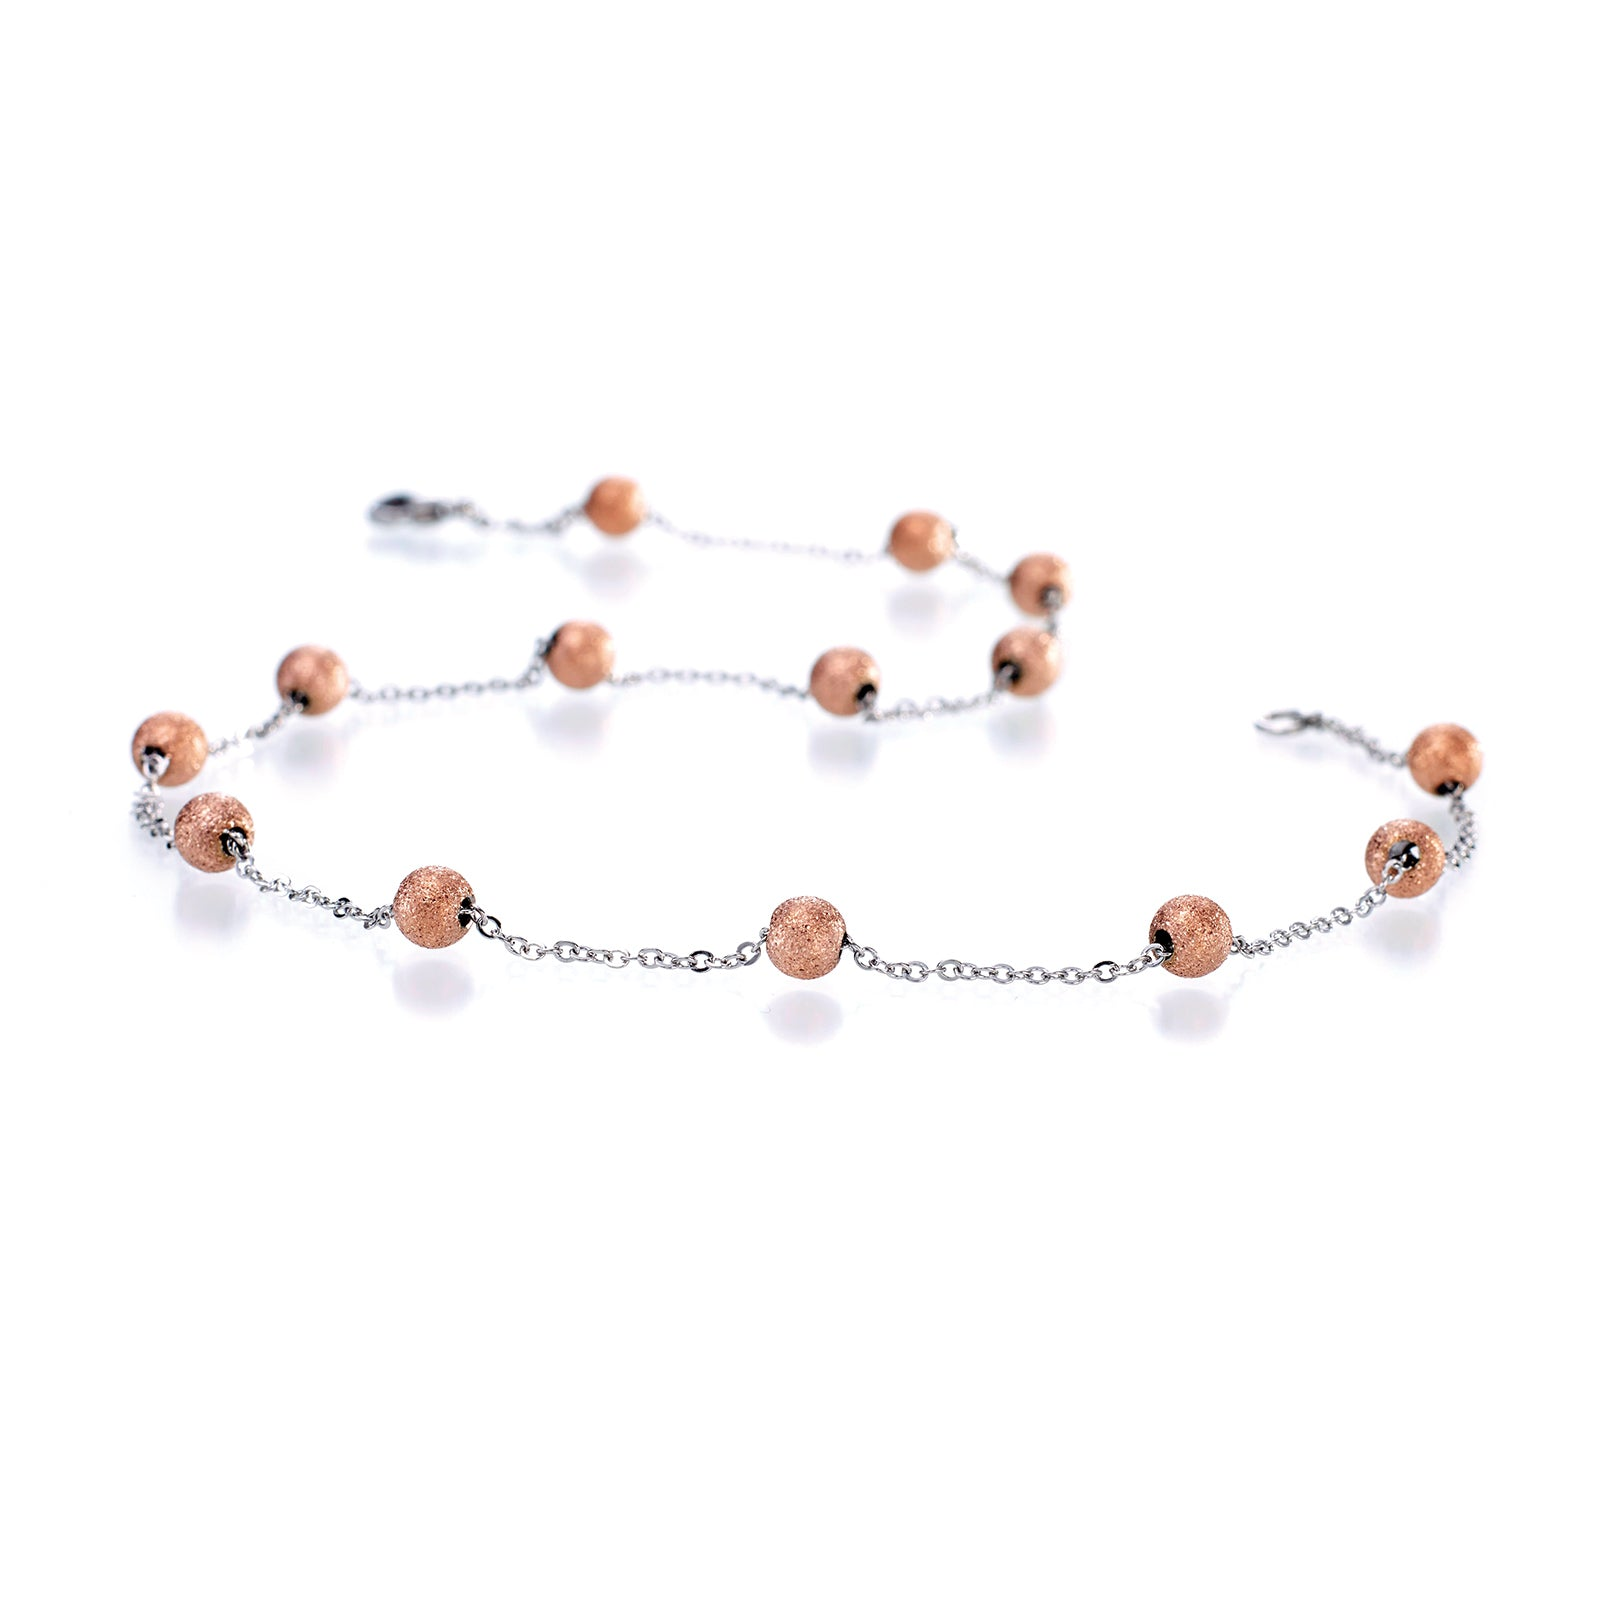 MNC-N019-C Steel Necklace - Rose Gold 18-inch